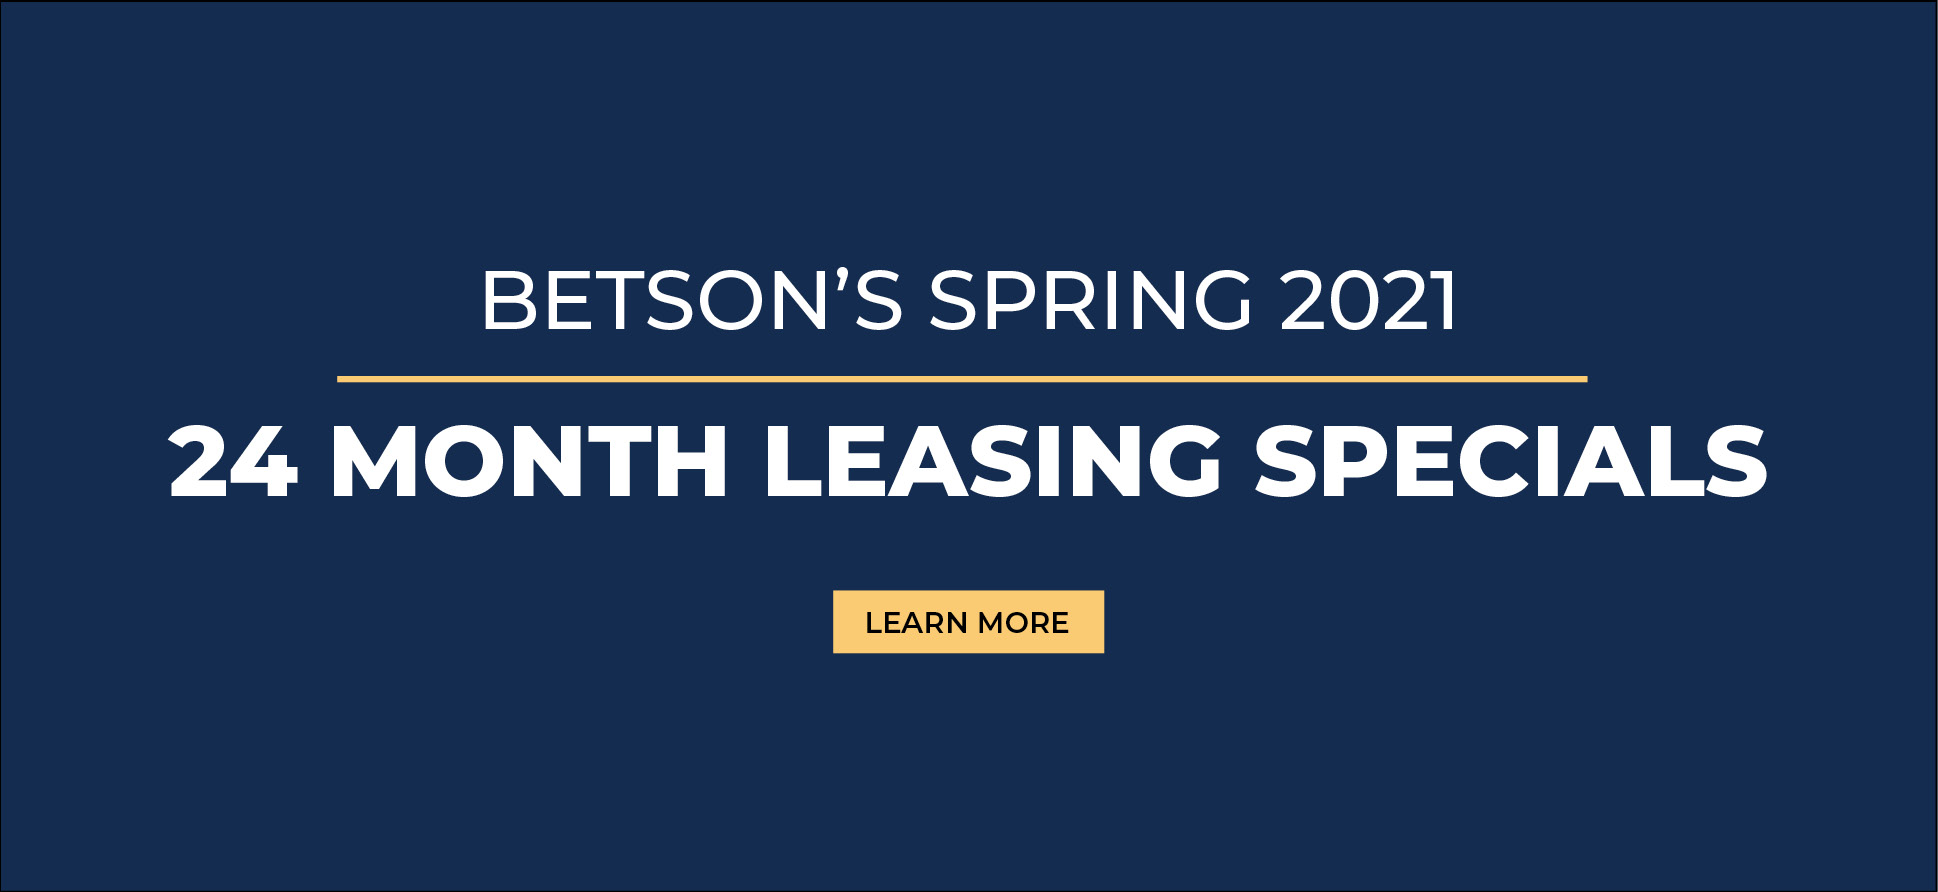 24 Months Leasing Special Banner